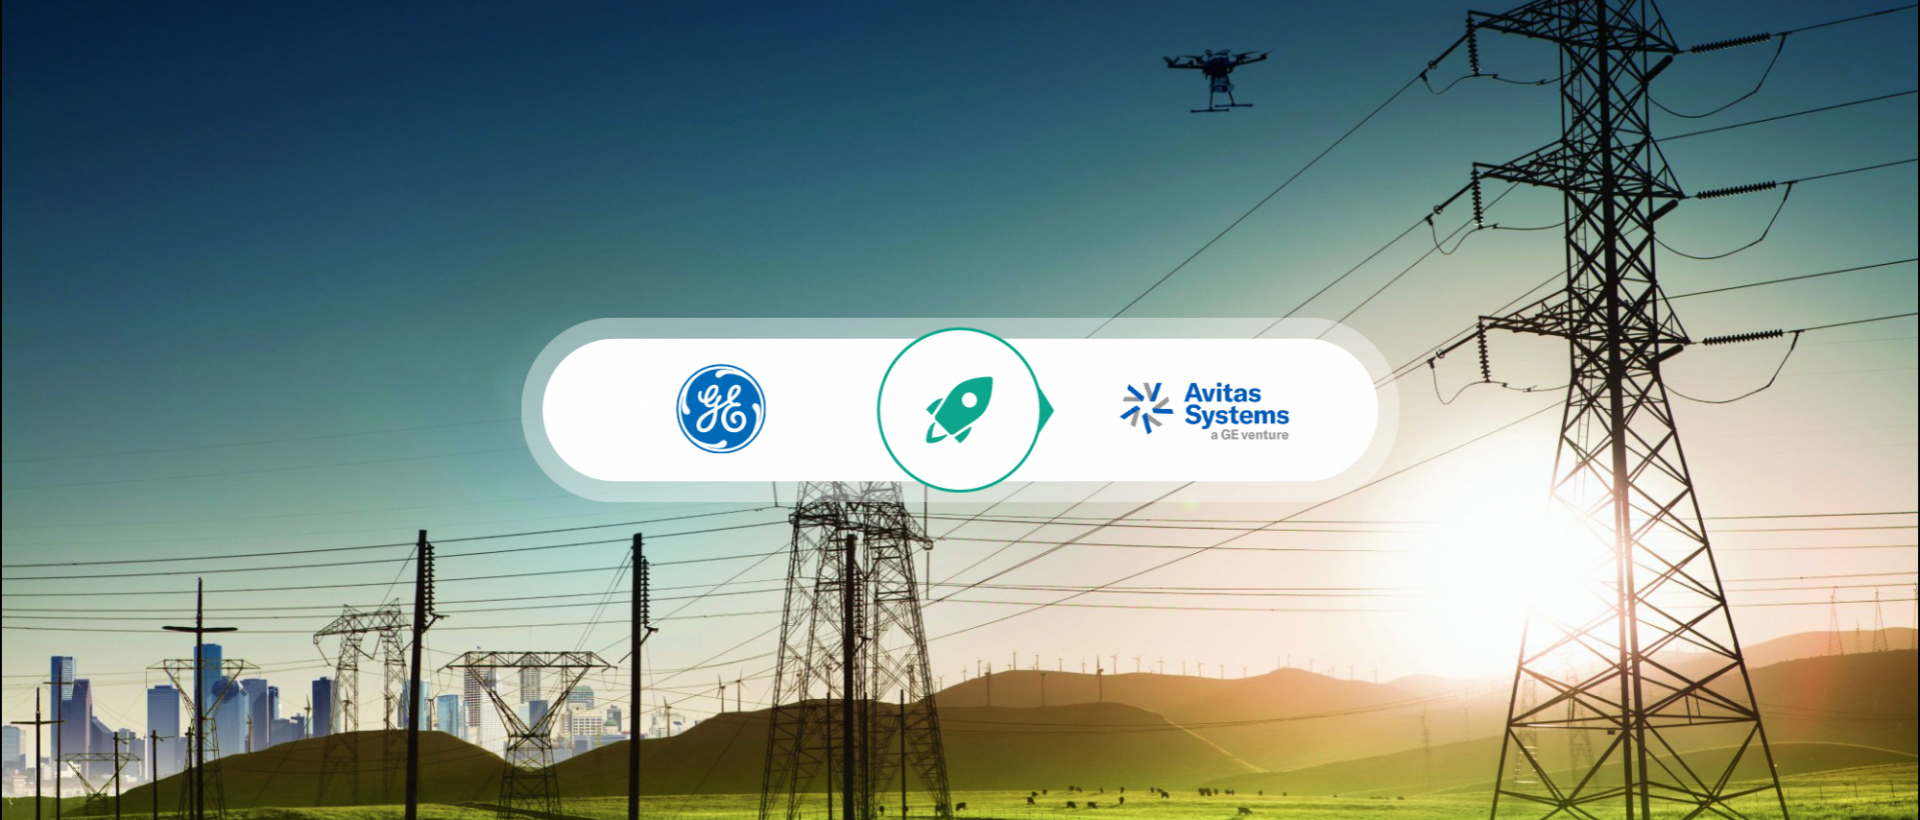 GE fights for a safer industrial inspection future with technology and its new startup Avitas Systems